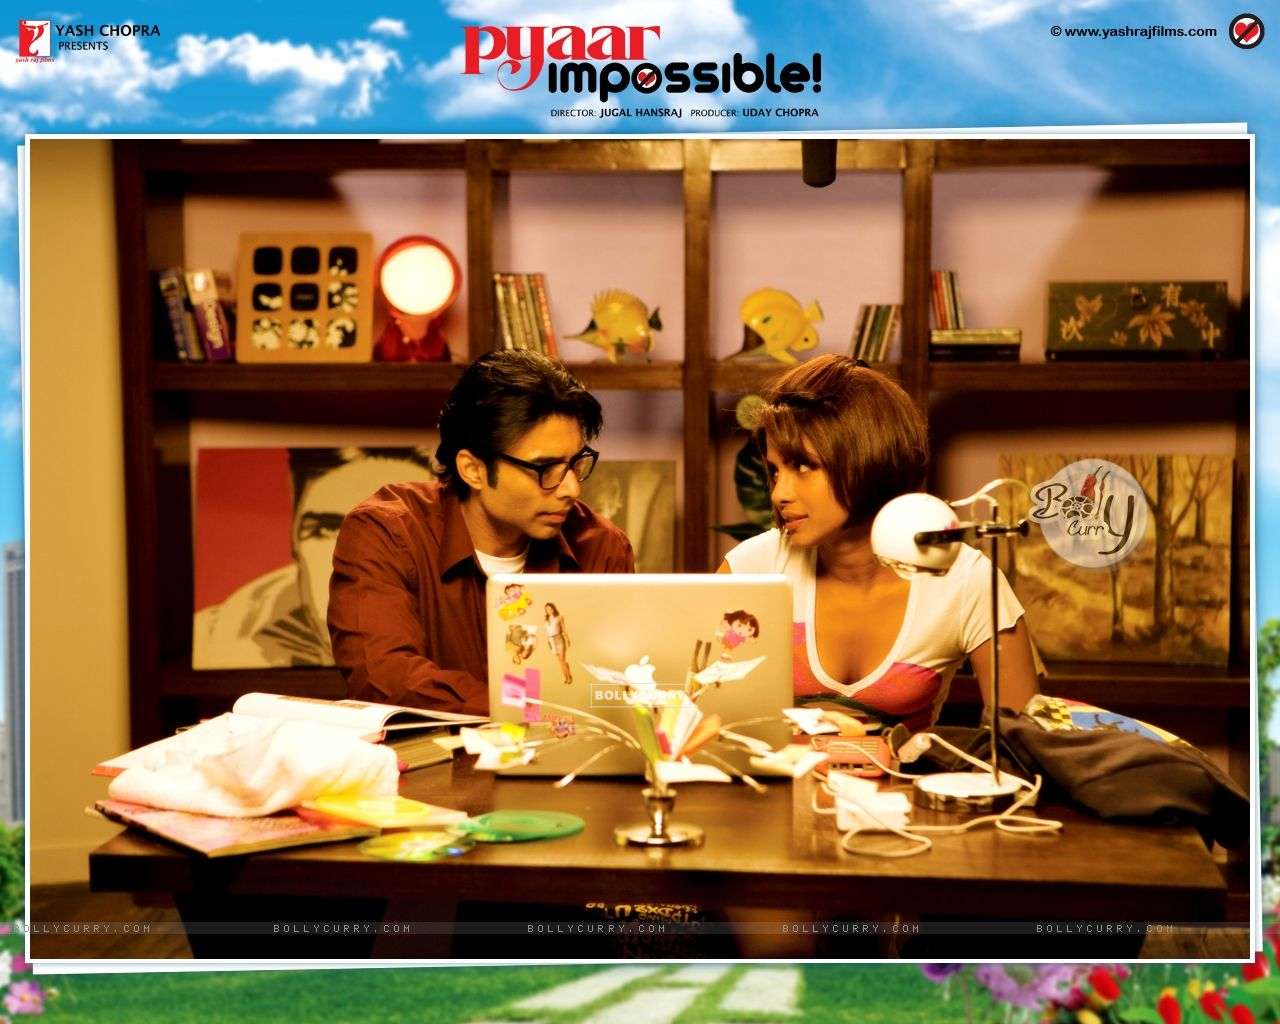 Pyaar Impossible movie wallpaper with Priyanka and Uday (40424) size:1280x1024